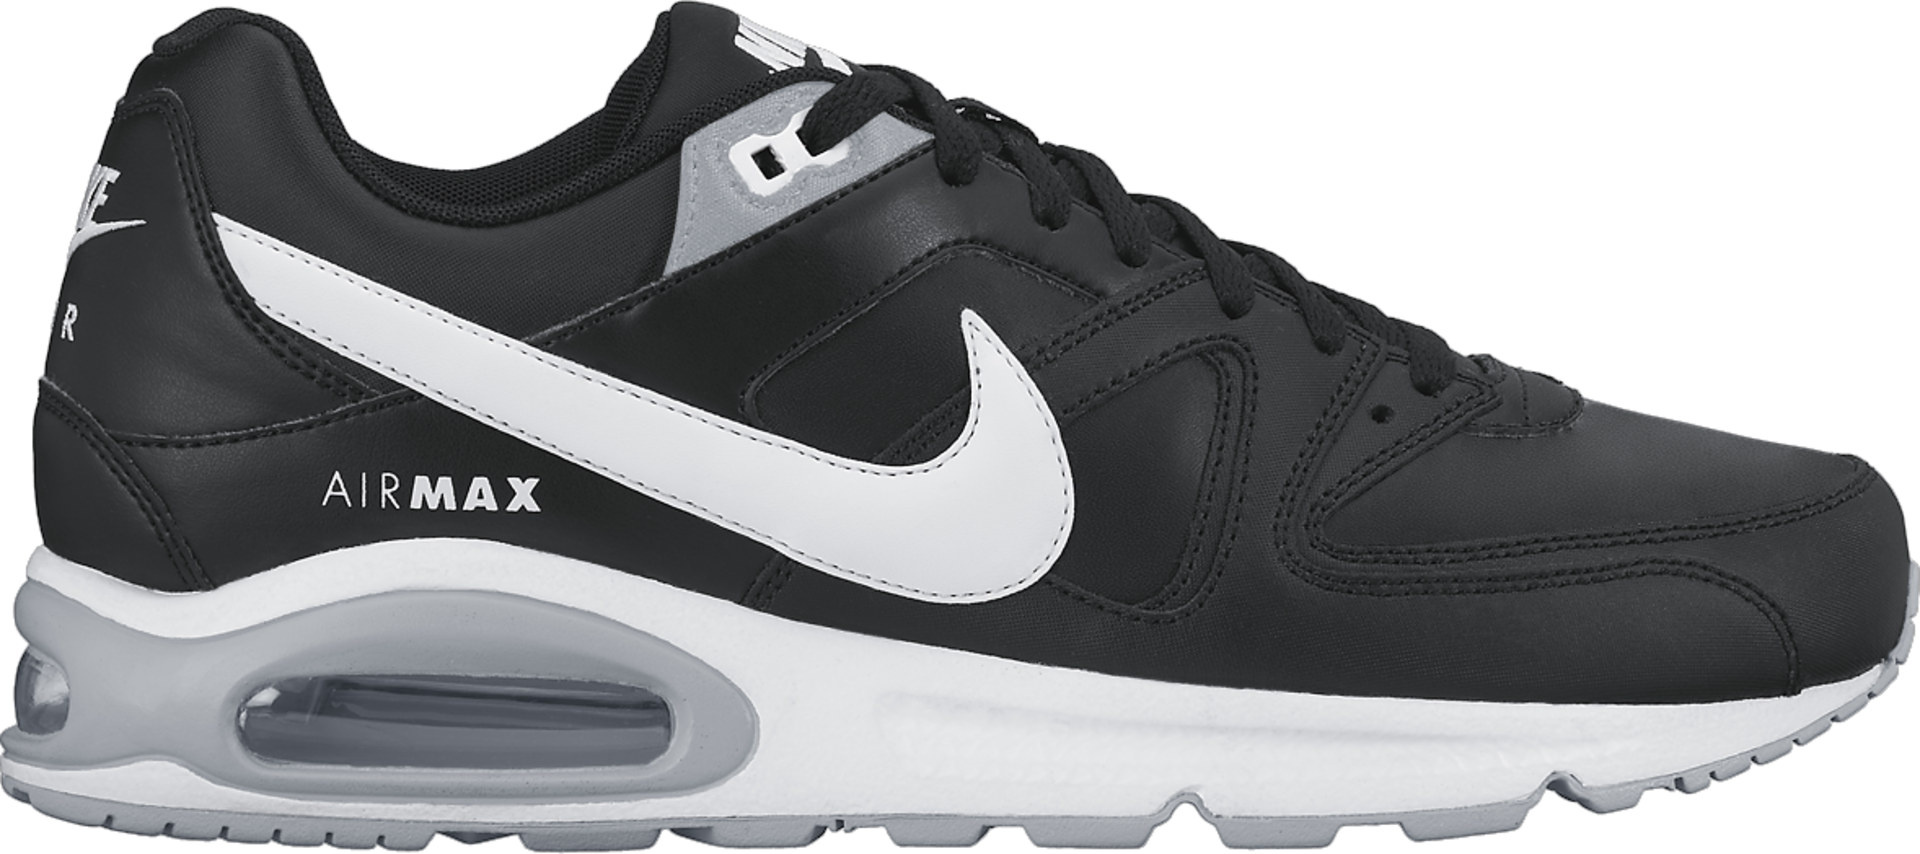 Nike Air Max Command leather sneakers - Intersport (With ...